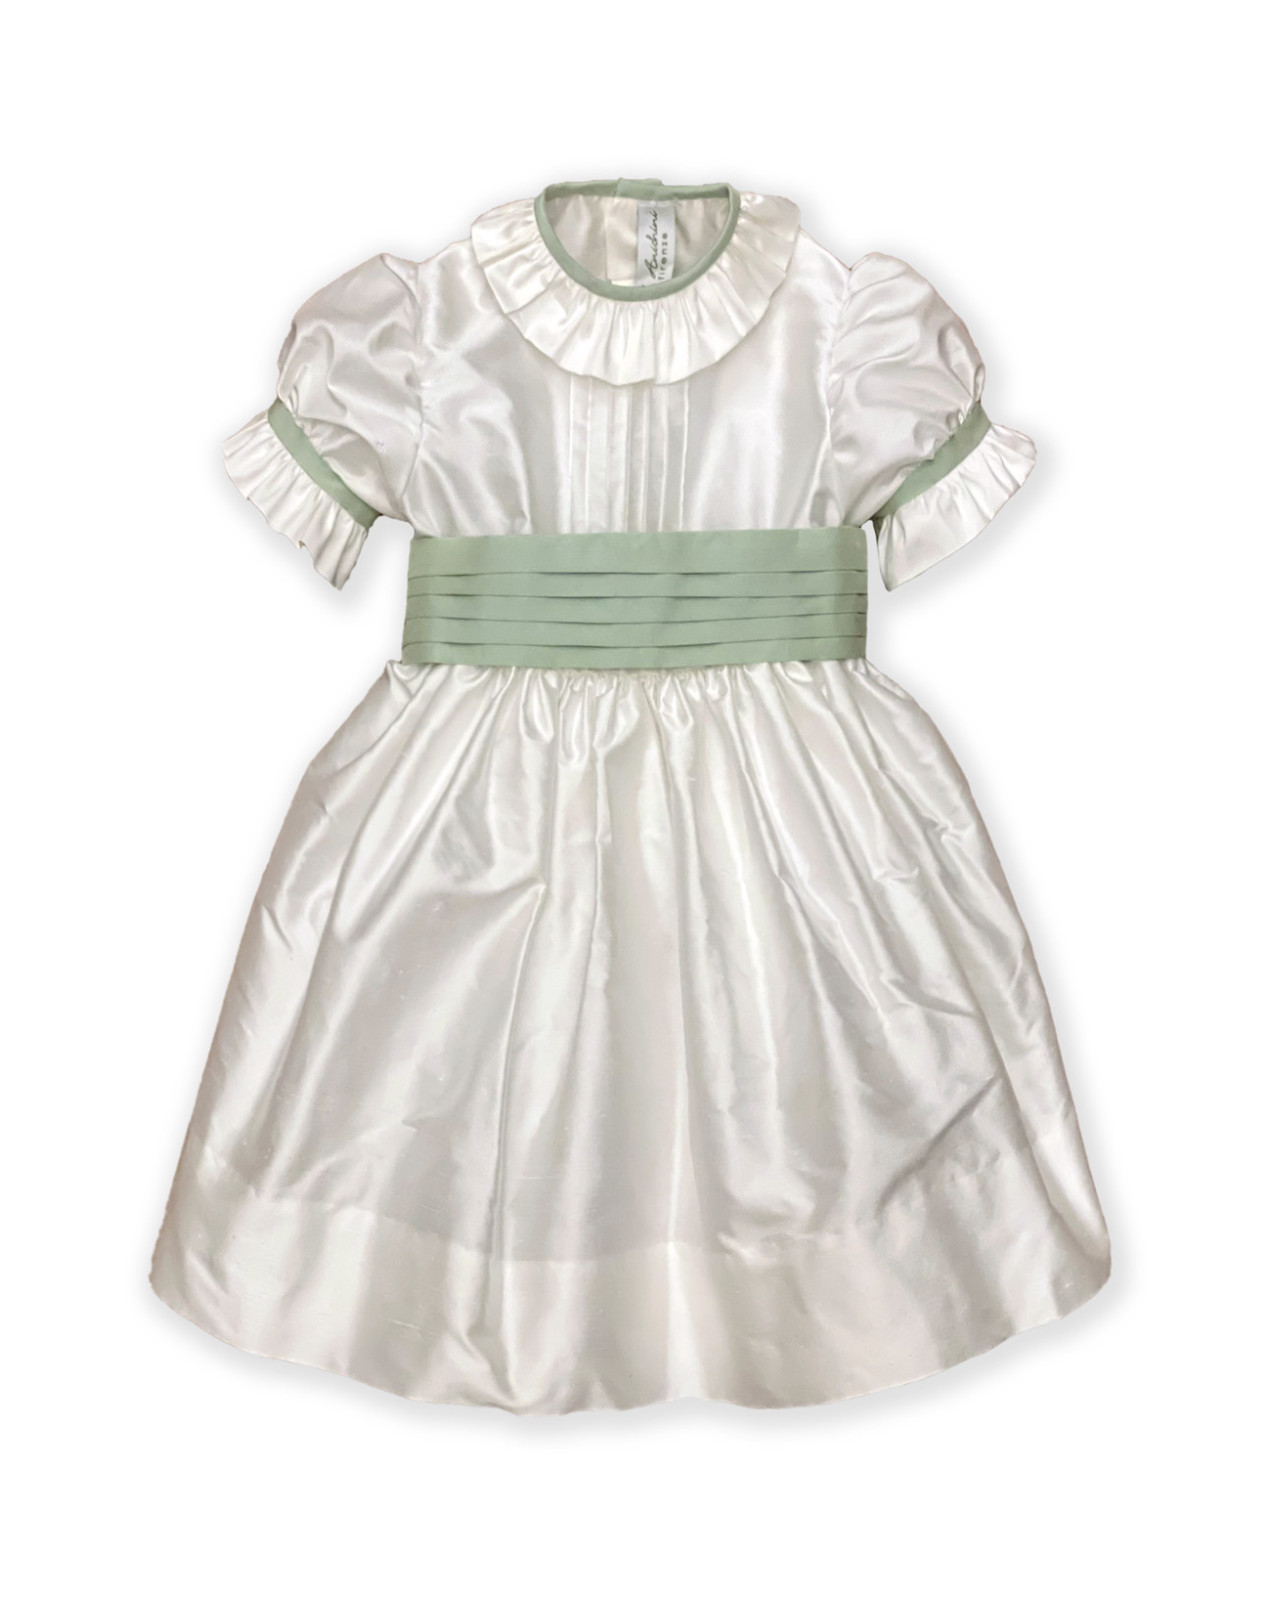 Party dress for girl , Charlotte, green.